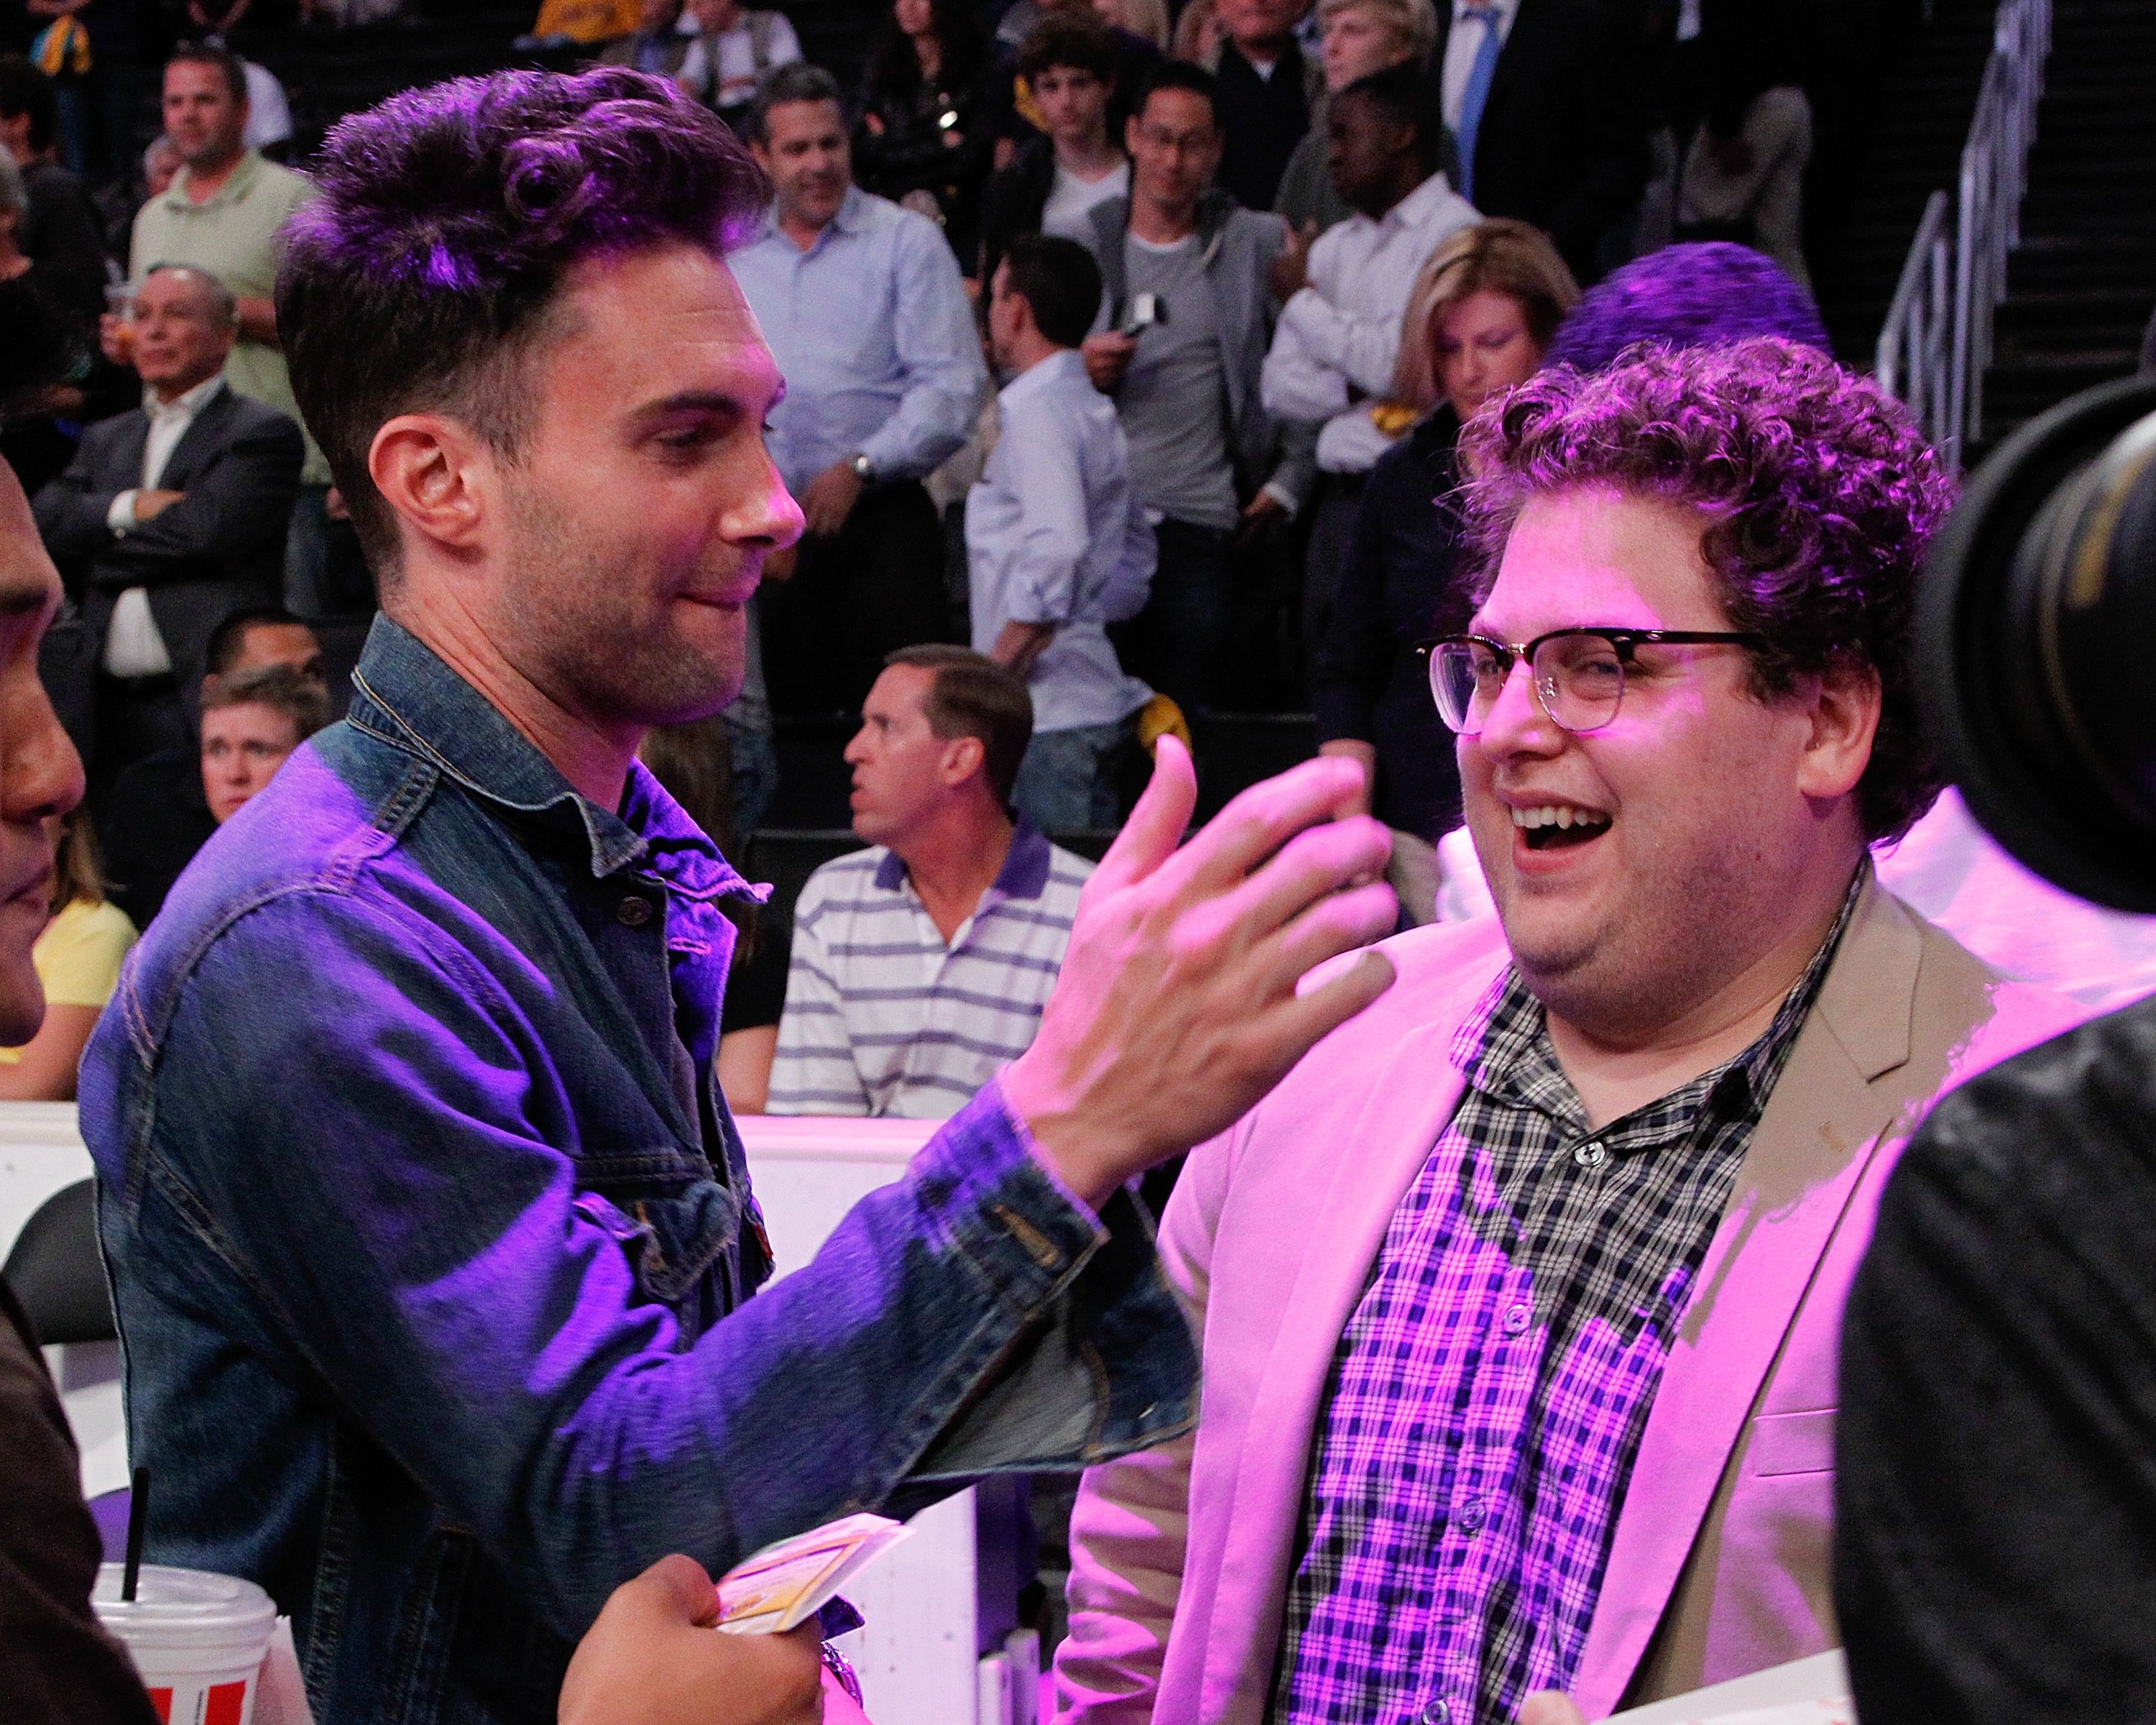 Adam Levine and Jonah Hill at a Lakers Game.